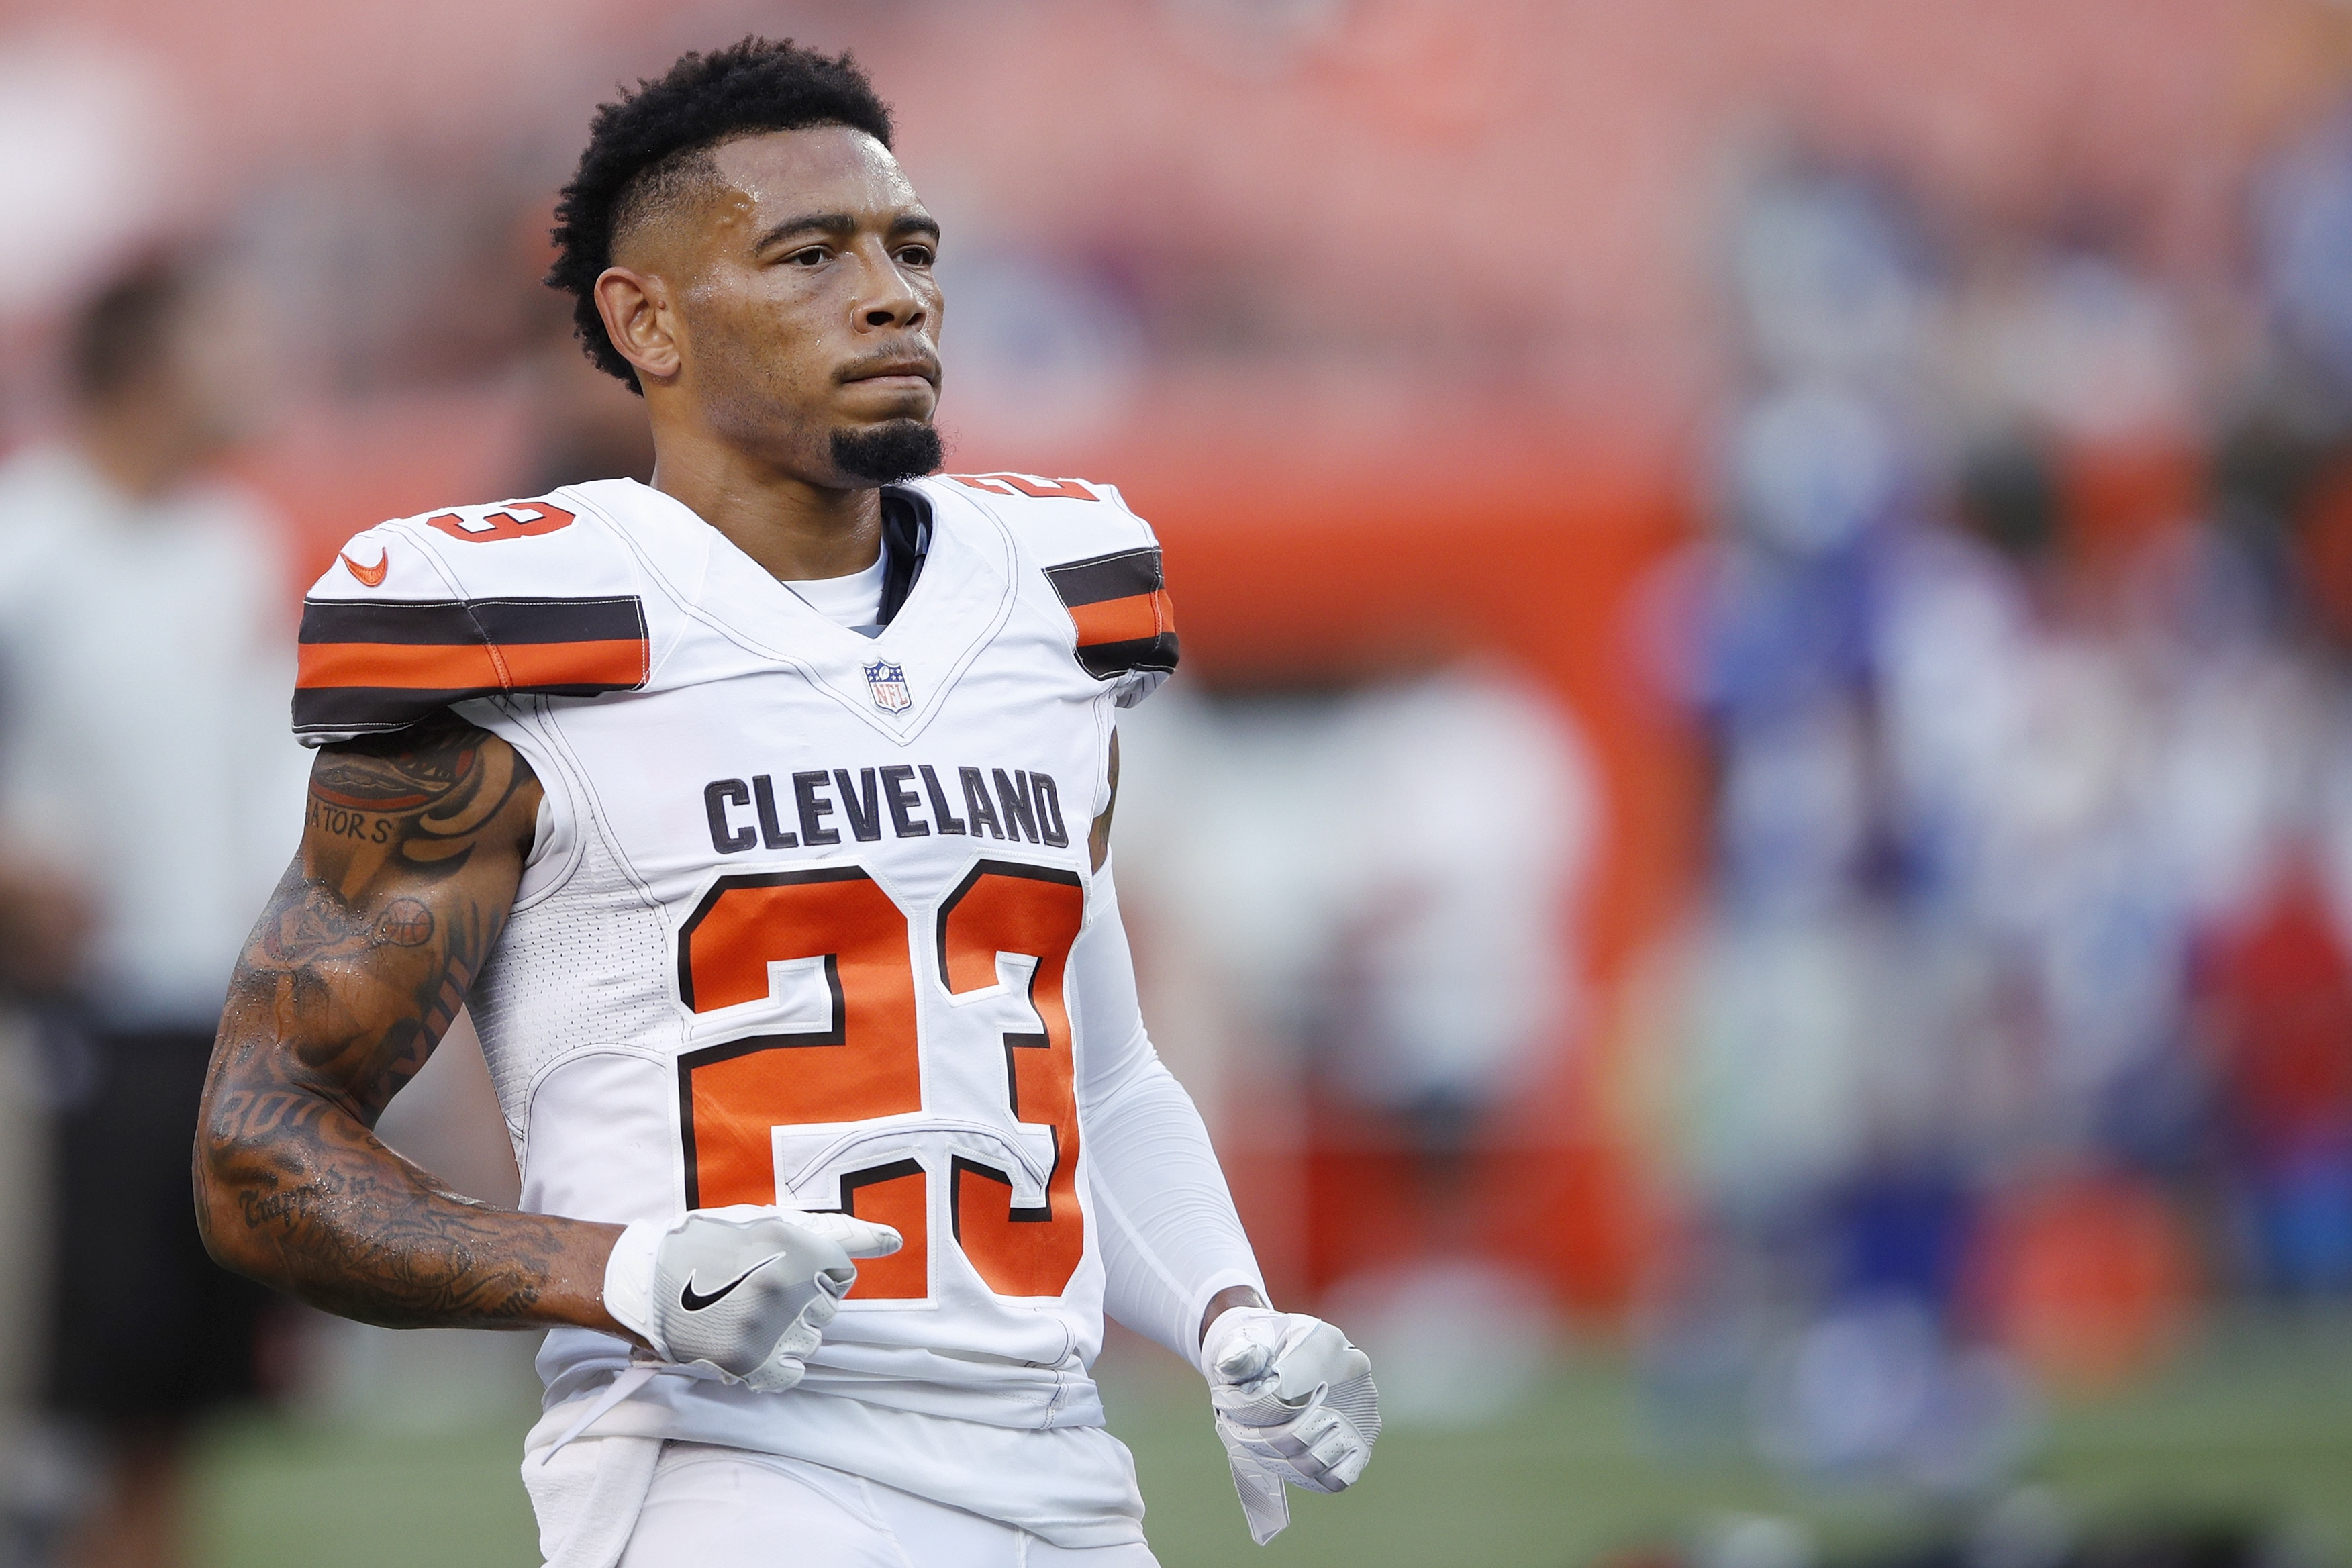 Joe Haden Watch: Will He End Up With The Miami Dolphins?